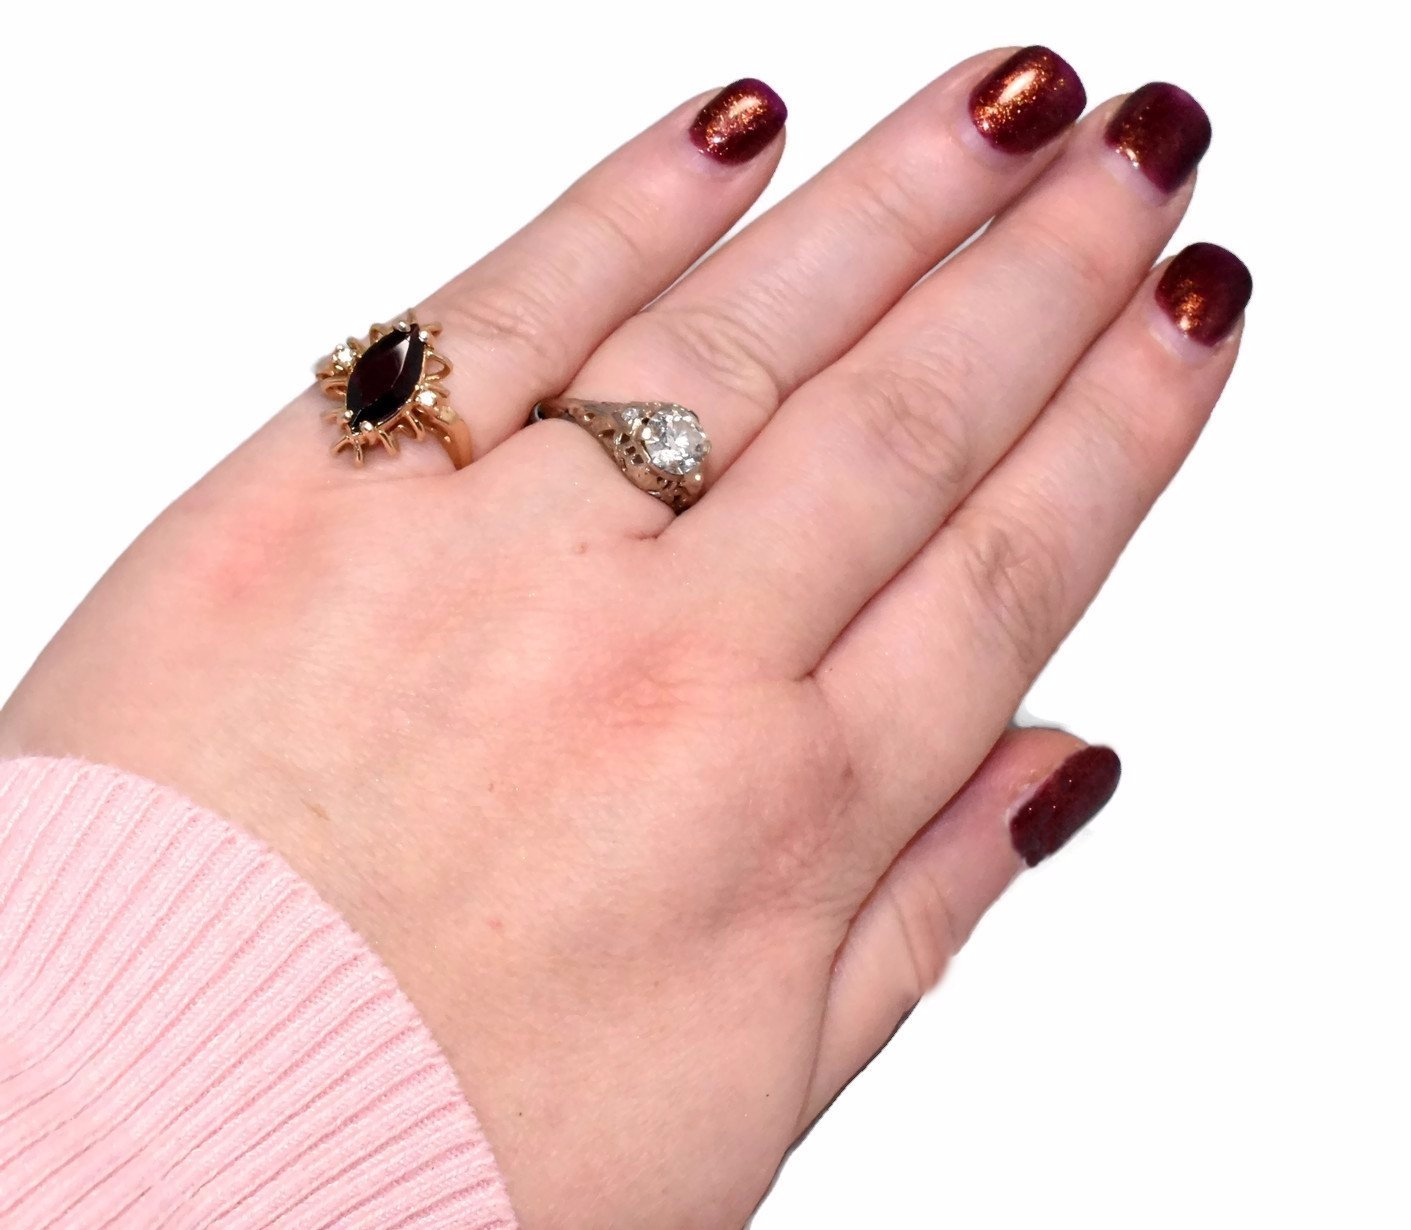 14k Gold Almandine Garnet Ring with Diamond Accents Vintage c1950 ...